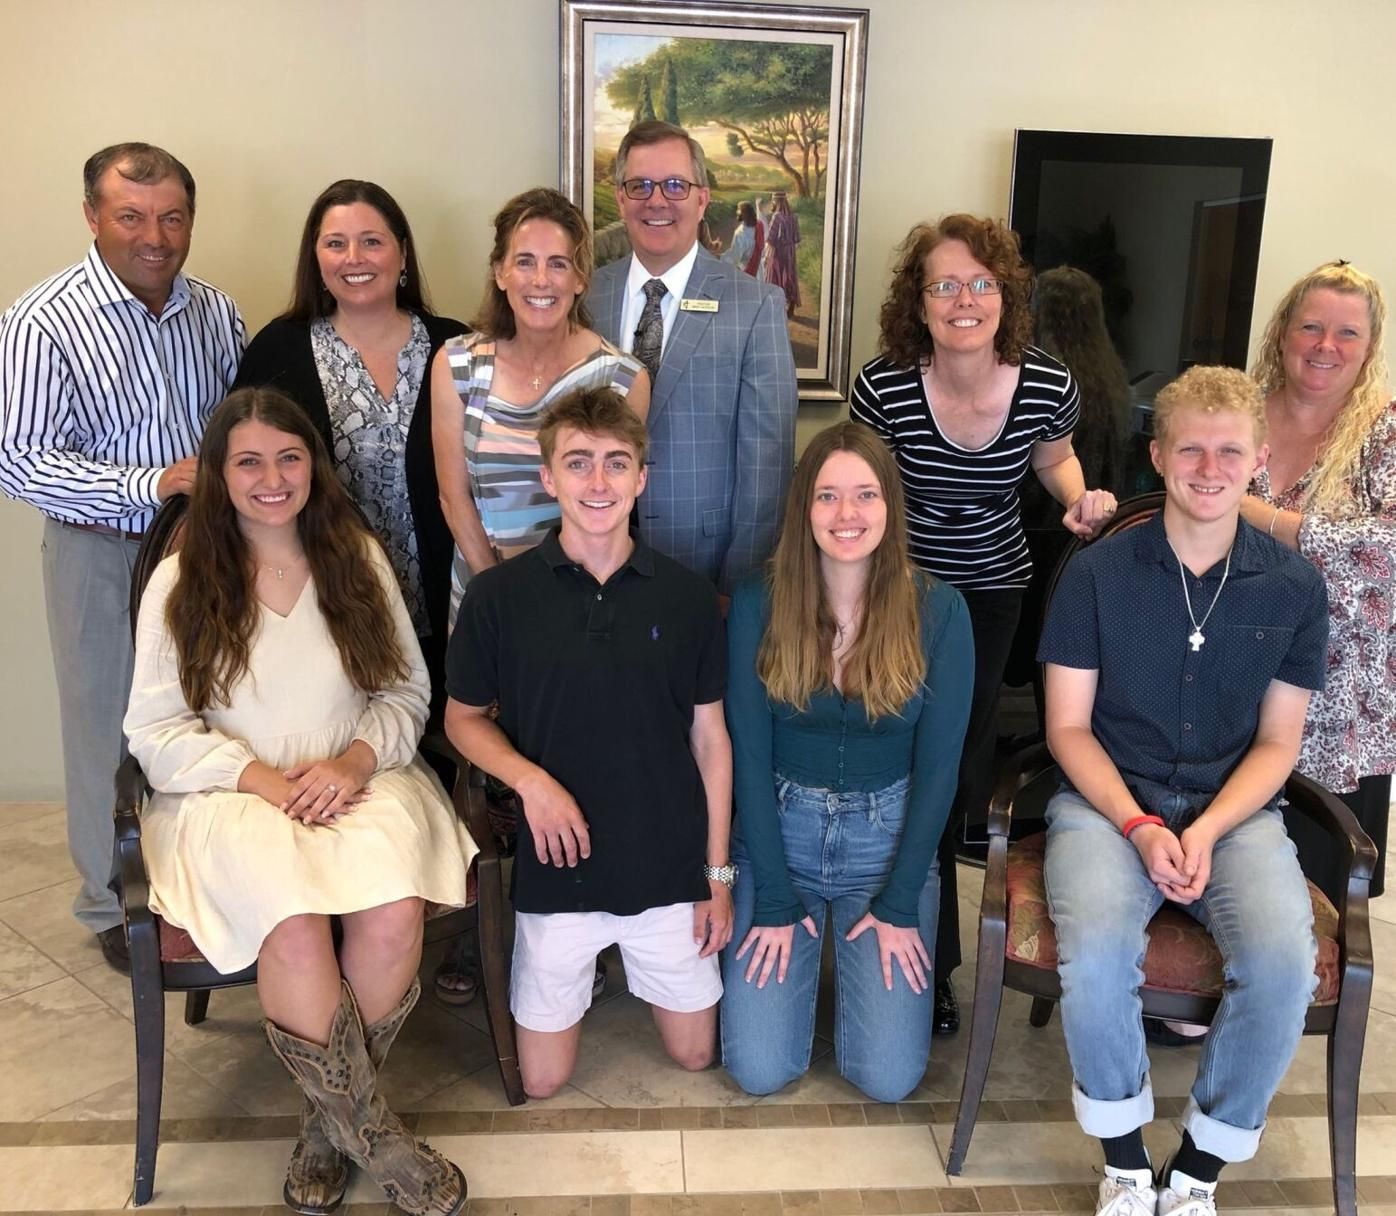 Church members award $17,000 in college scholarships to seven of its young members.